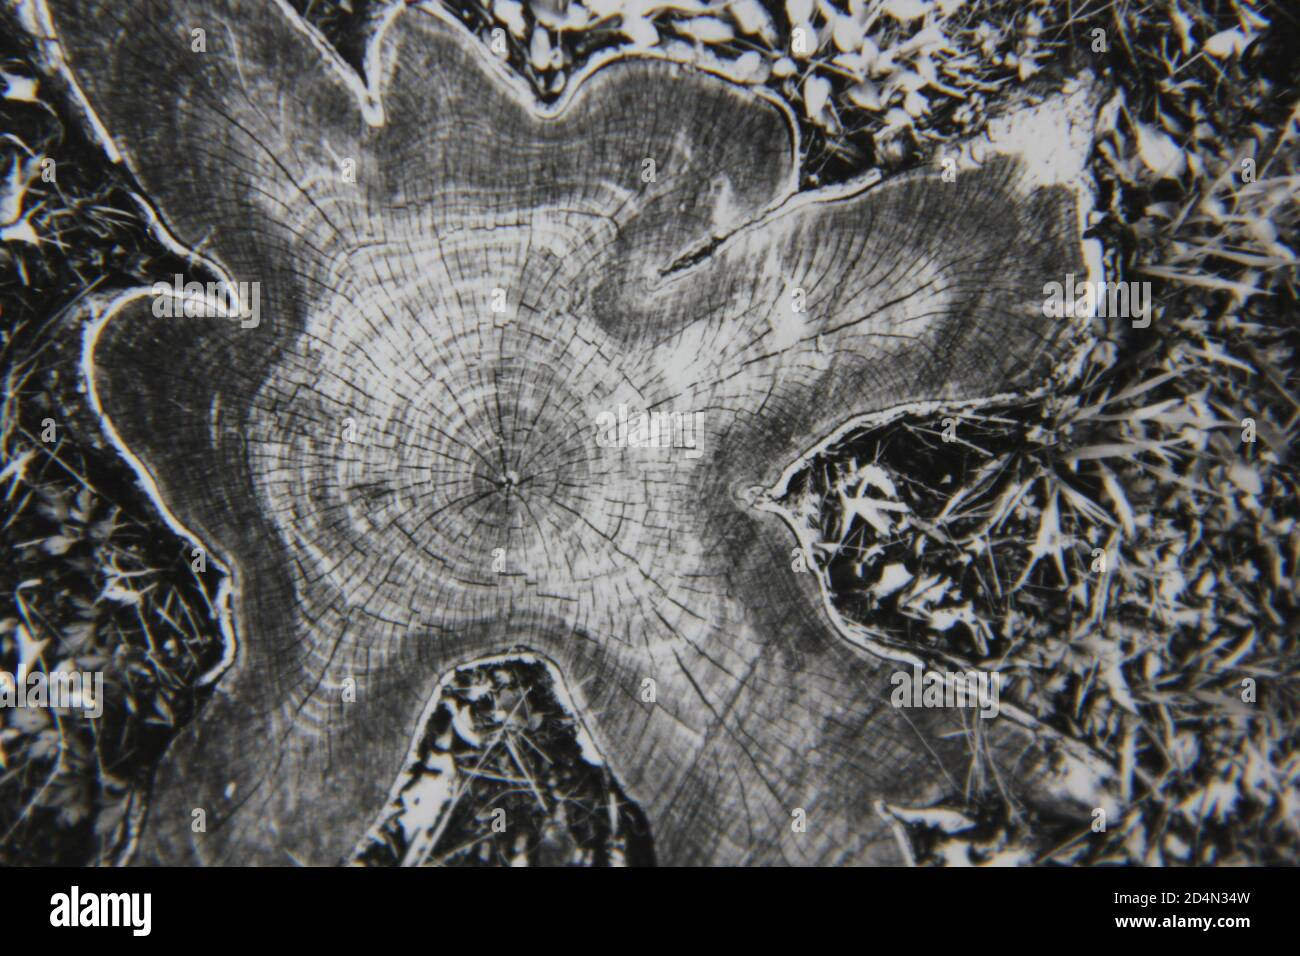 Fine 1970s vintage black and white photography of a closeup of the natural world in a high contrast abstract notion. Stock Photo